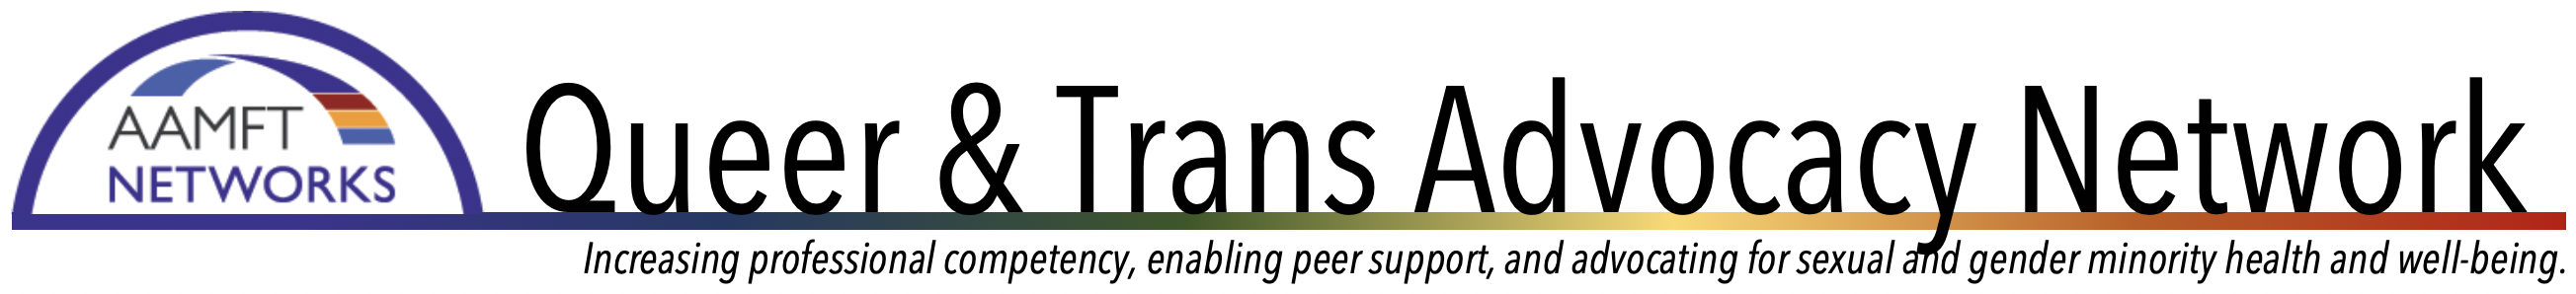 Queer and Trans Advocacy Network - AAMFT Networks